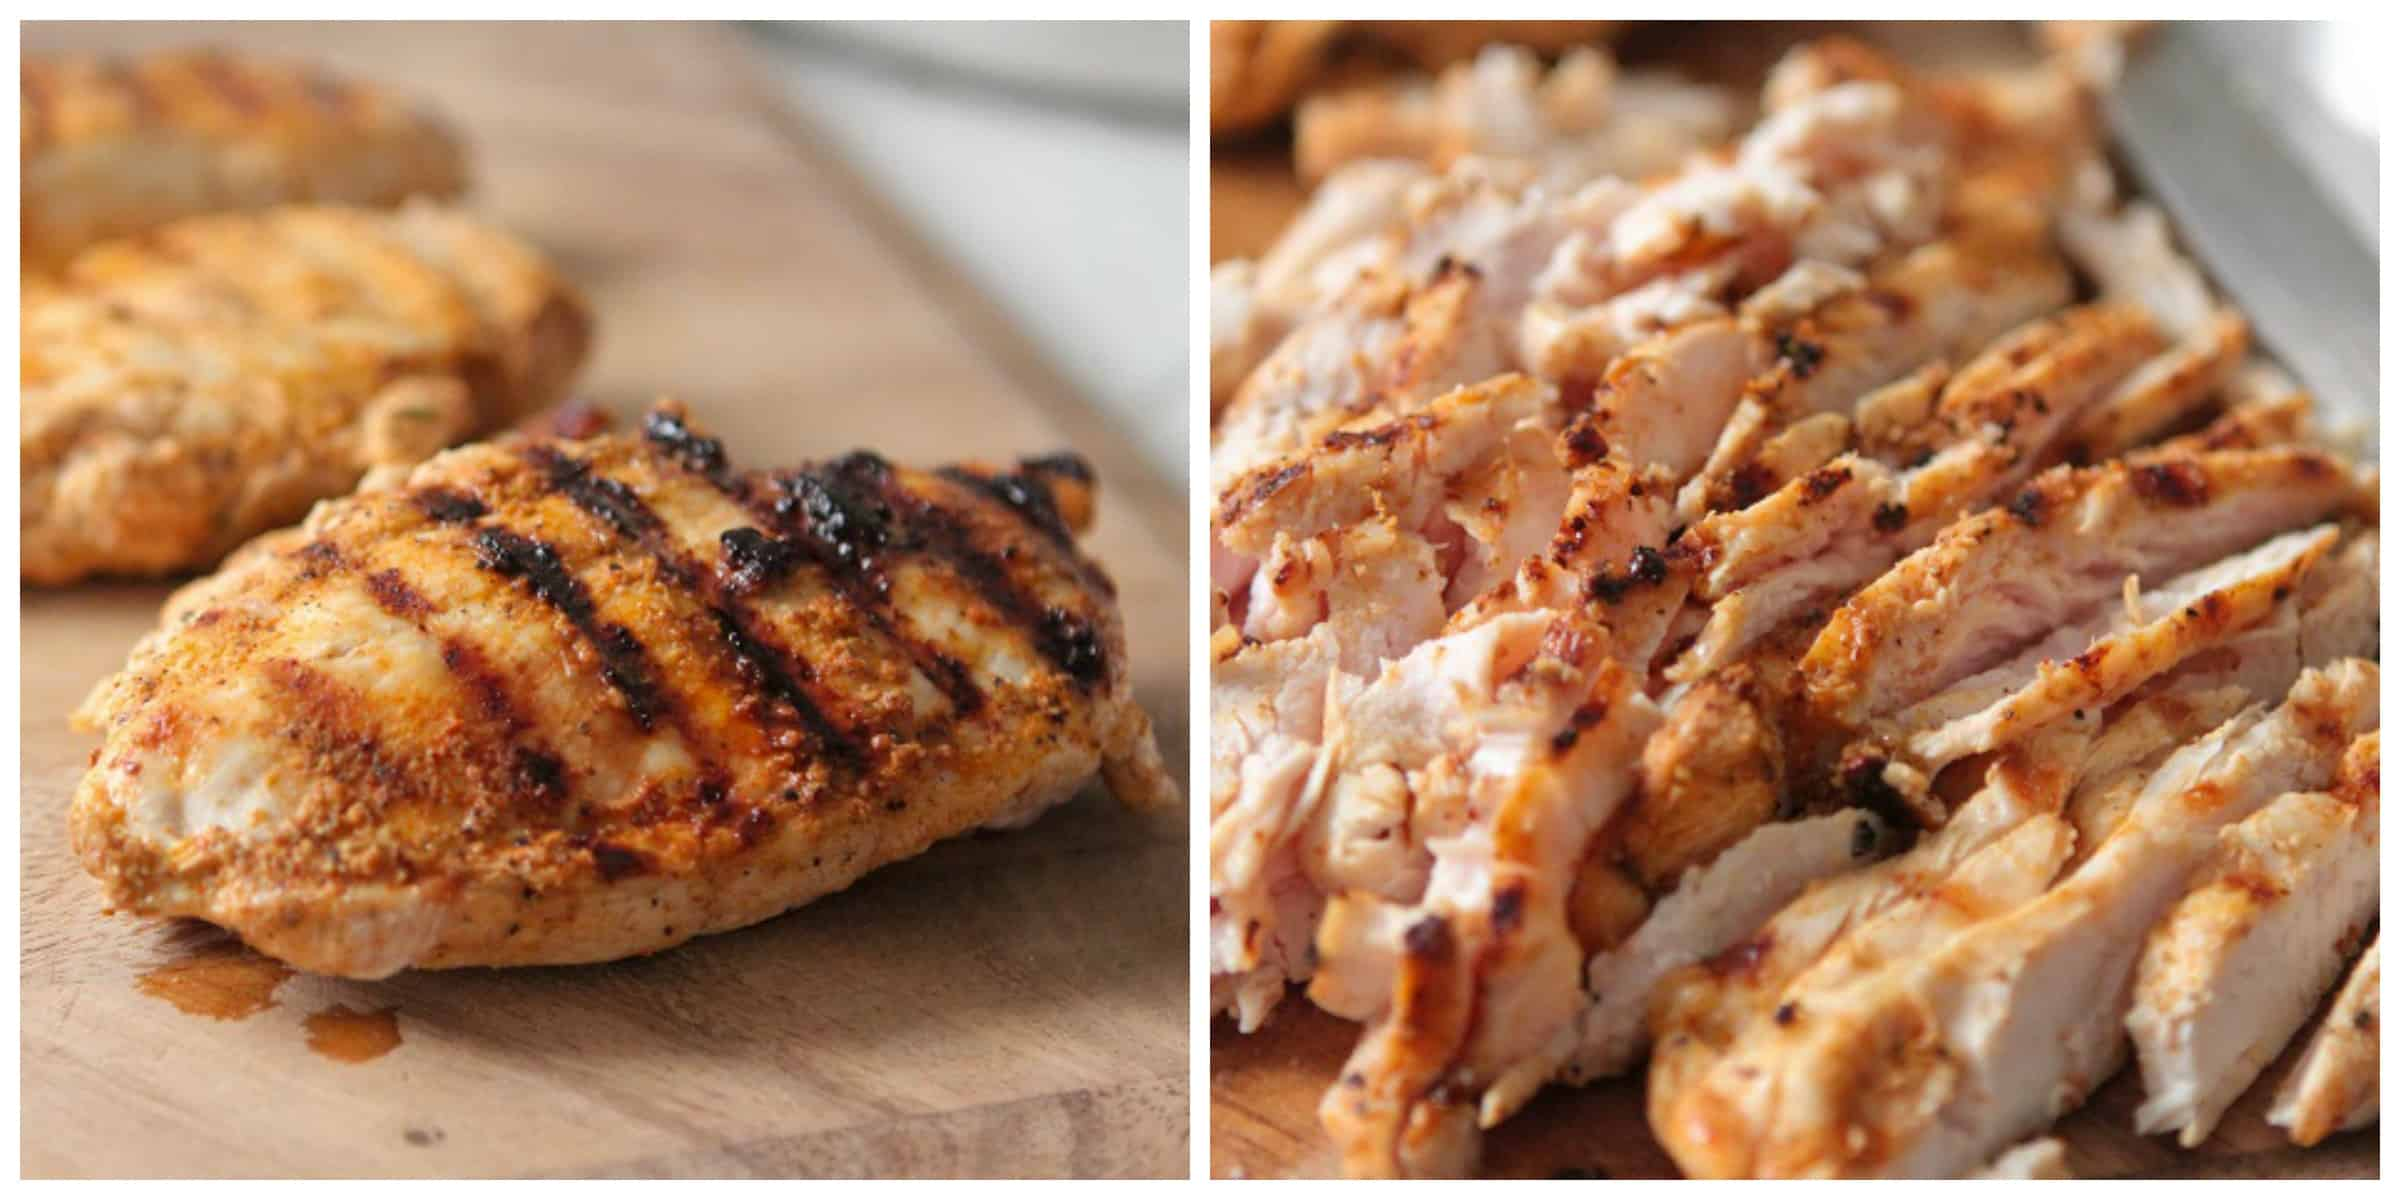 · Rinse chicken breasts under cold water and pat dry. Rub chicken with olive oil and season all over with salt and fresh ground black pepper. Preheat grill and prepare it for direct-heat grilling over medium heat.